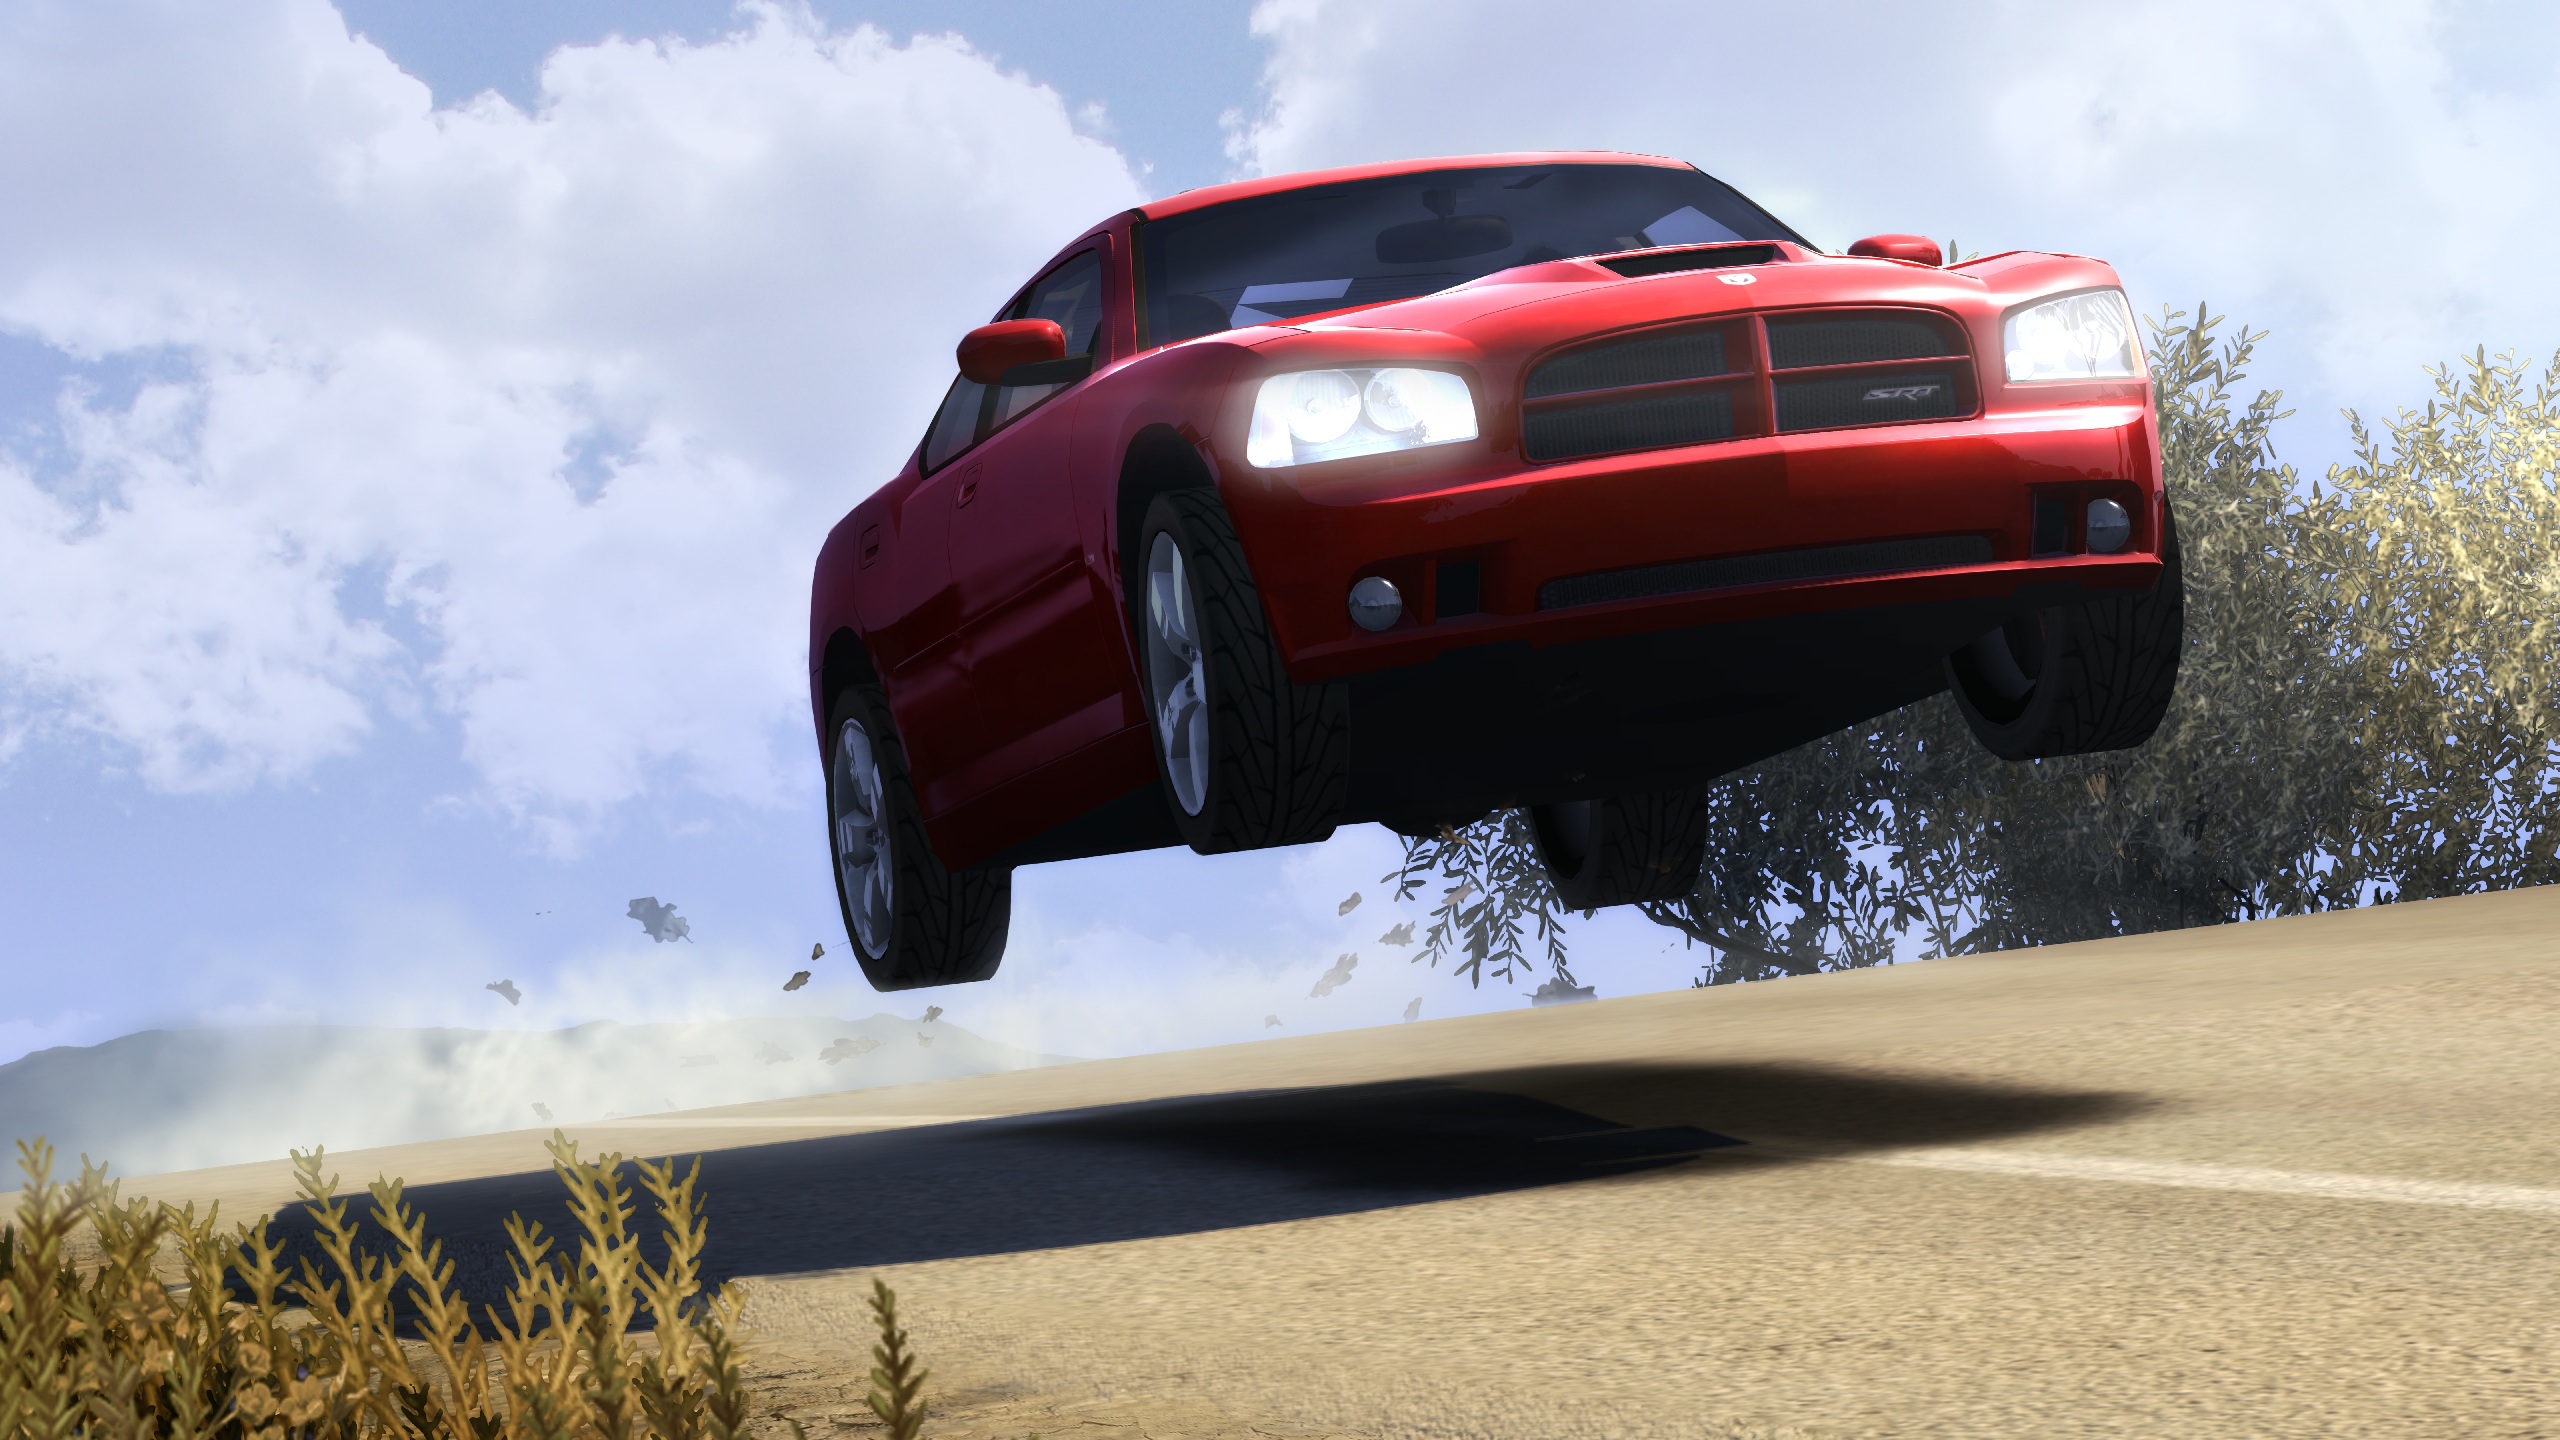 Test Drive Unlimited 2 screenshot